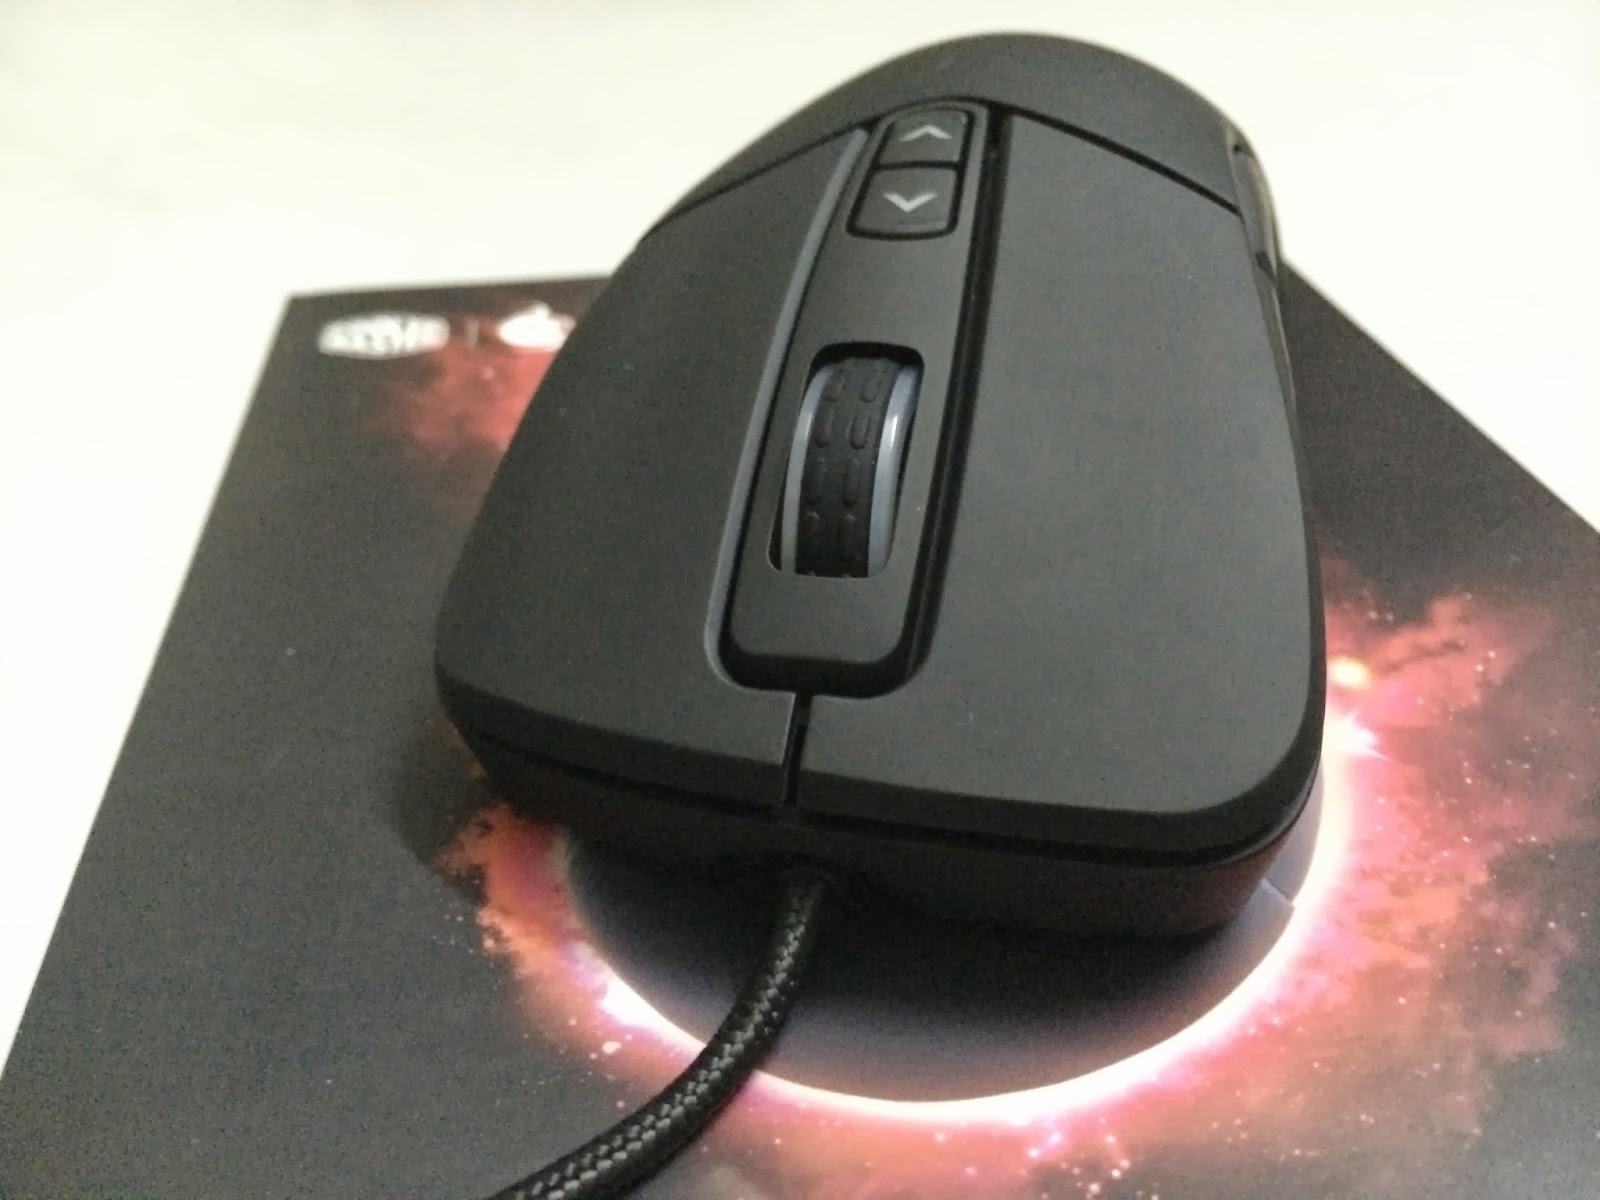 A Sneak Preview On The CM Storm Mizar Laser Gaming Mice 3